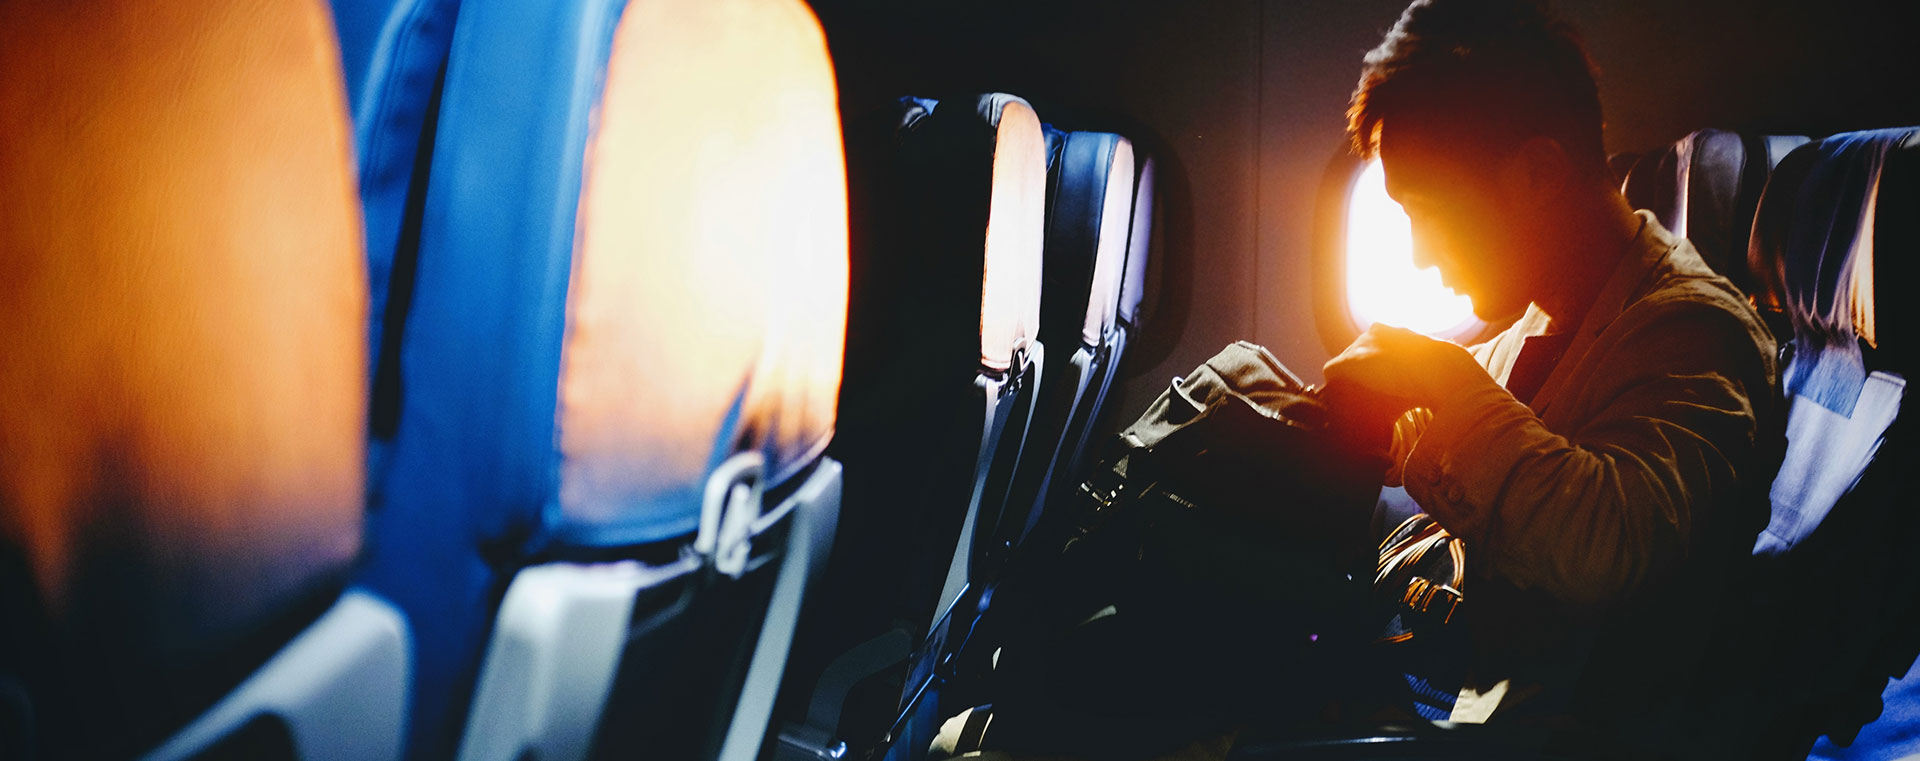 man-sitting-plane-sunrise